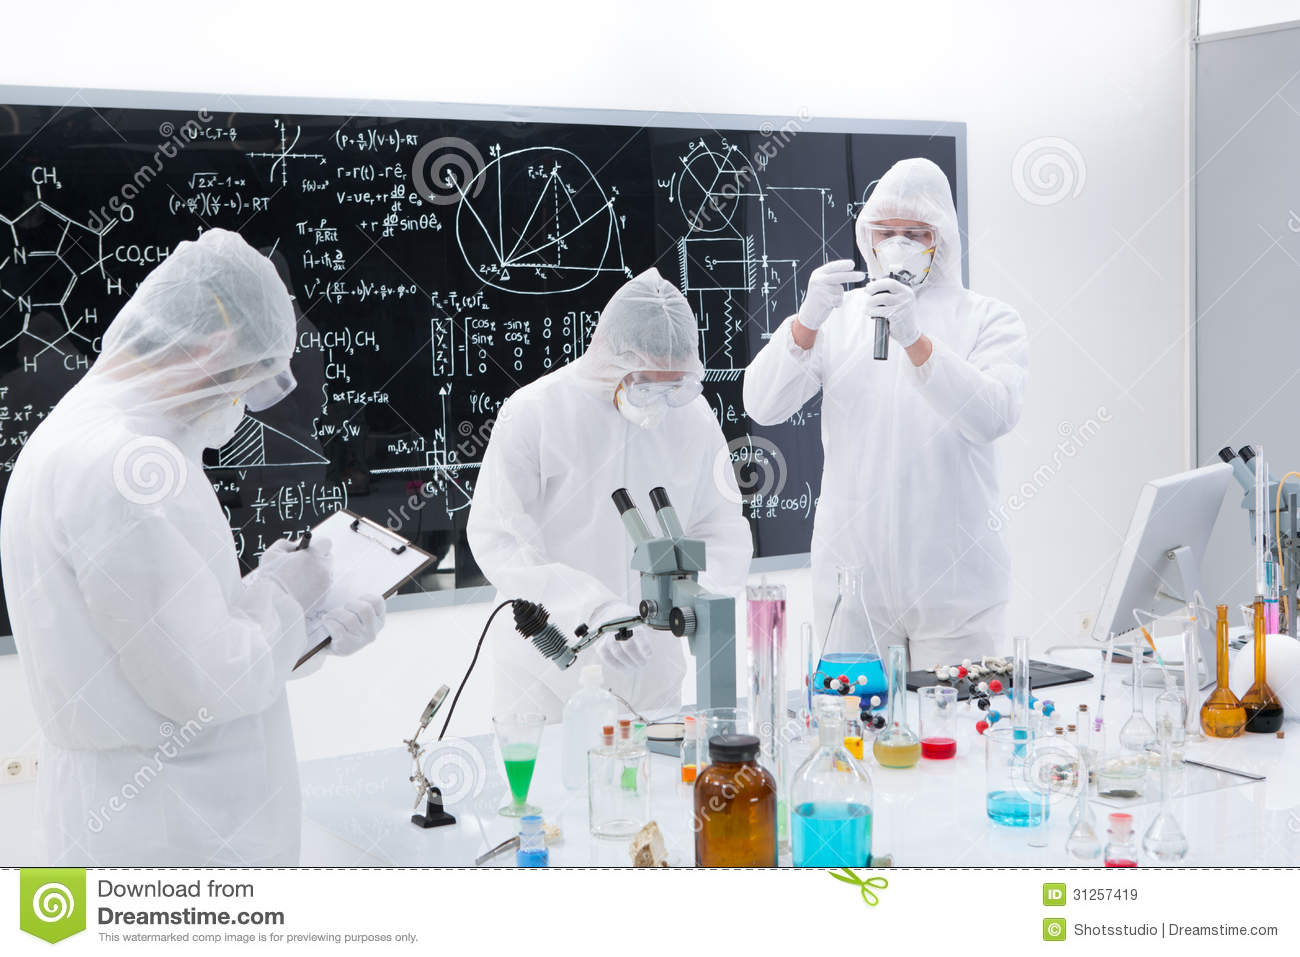 An analysis of scientists